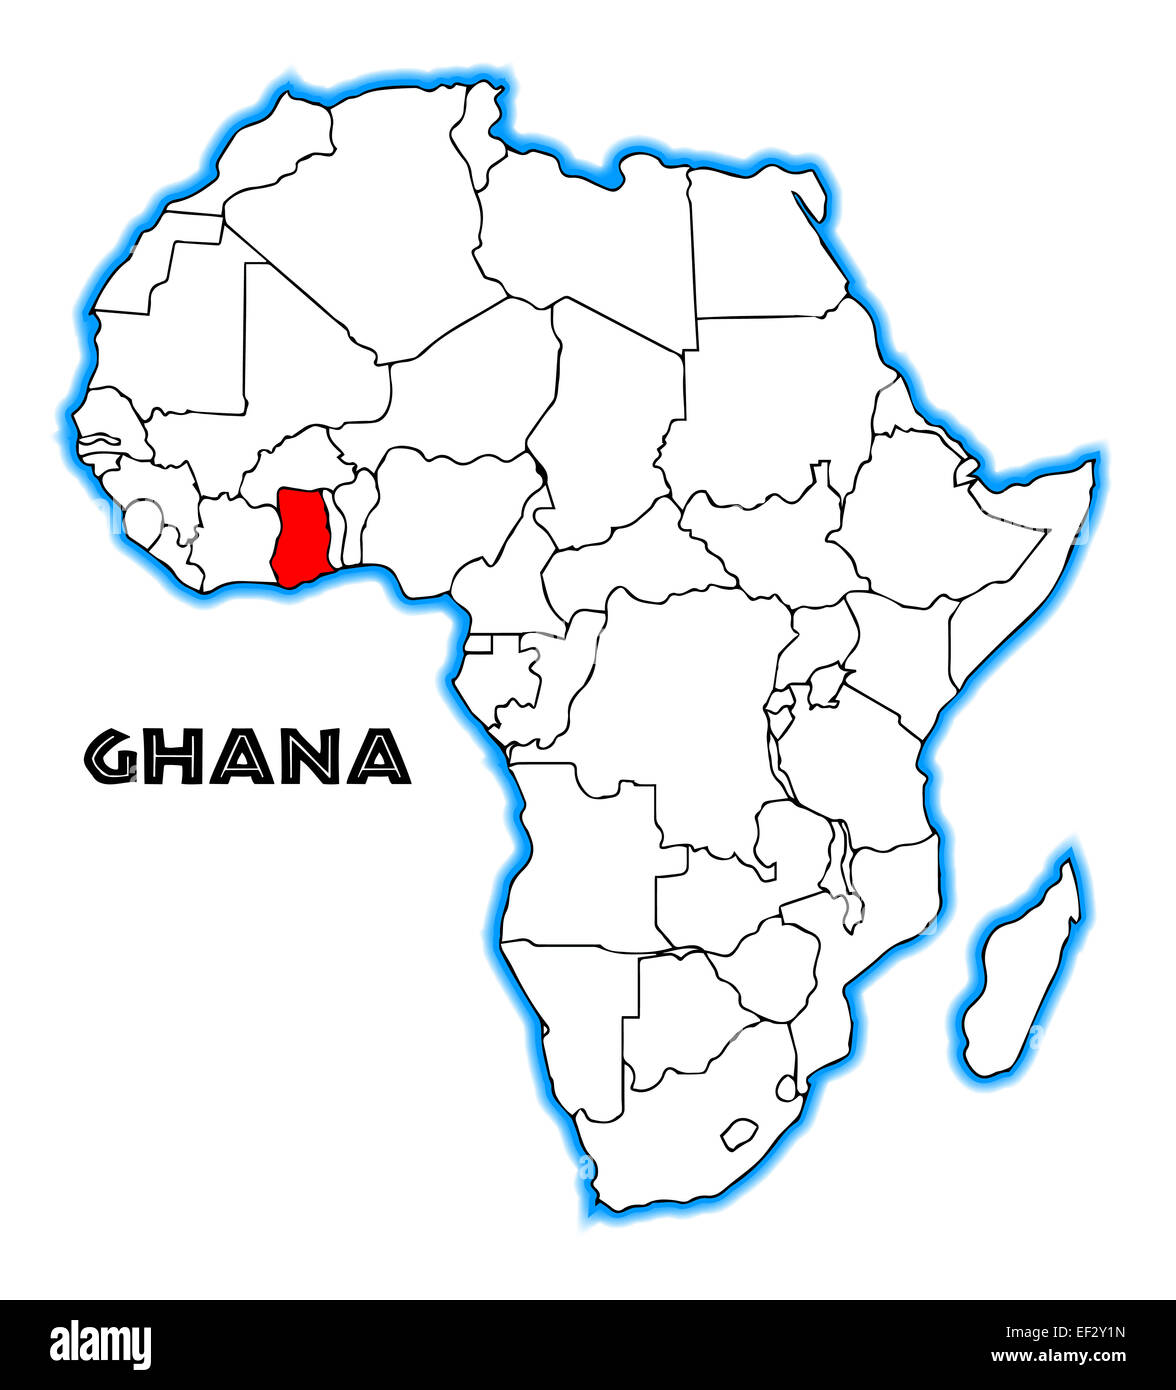 Republic of ghana cut out stock images pictures alamy ghana outline inset into a map of africa over a white background stock image gumiabroncs Choice Image